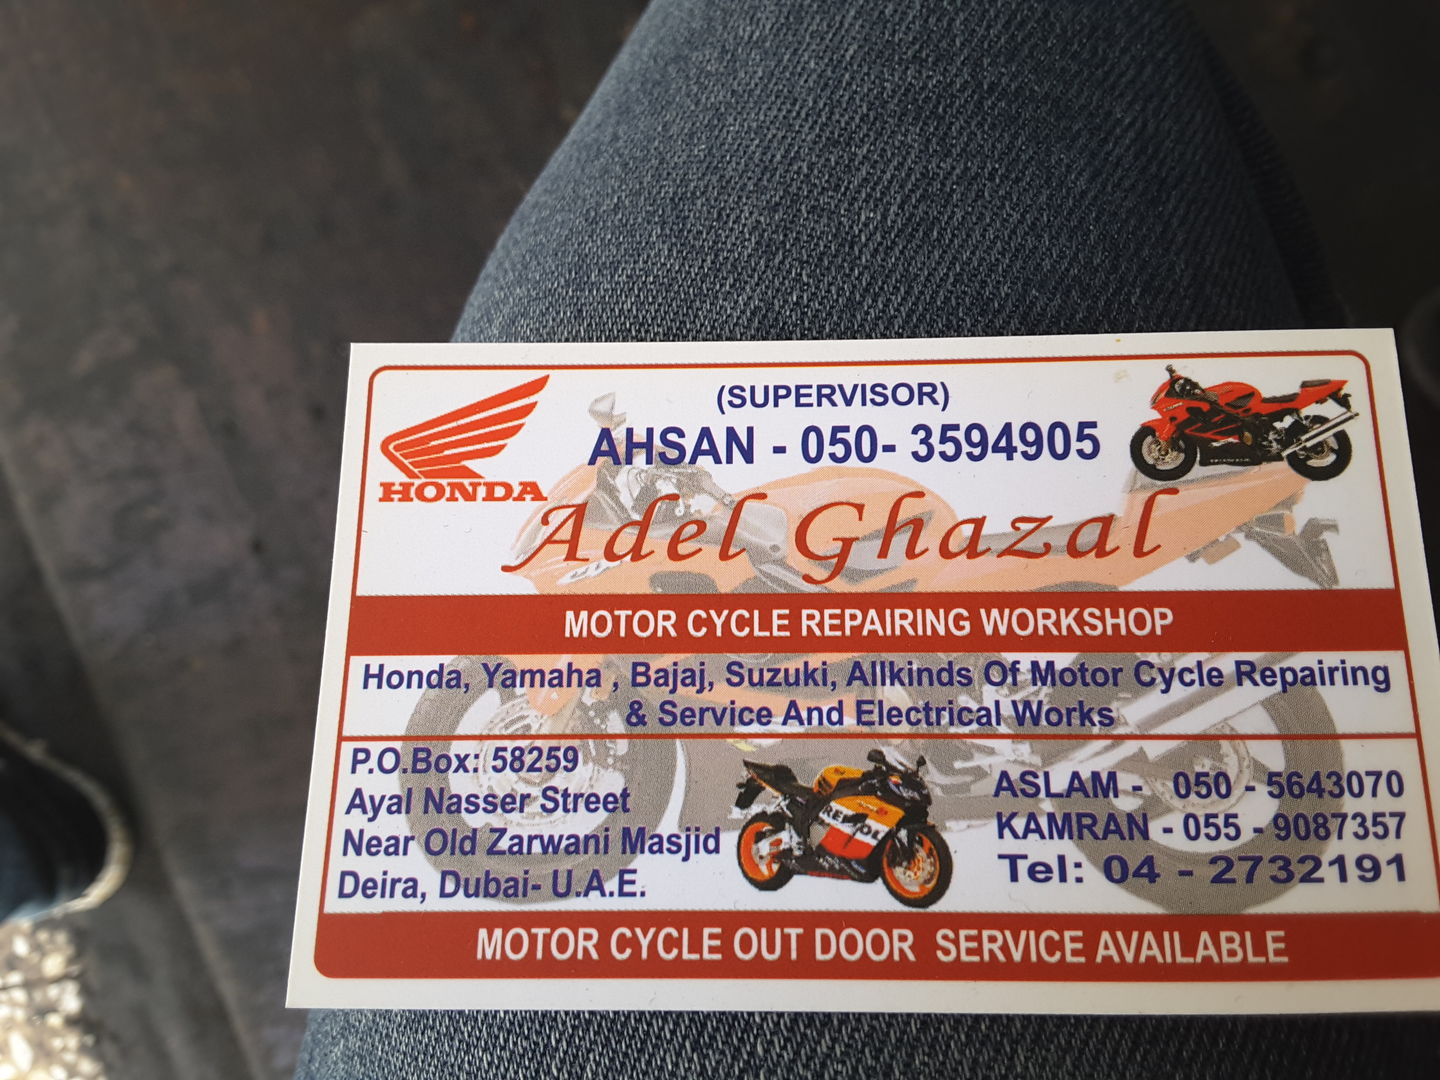 HiDubai-business-adel-ghazal-bicycle-repairing-workshop-transport-vehicle-services-motorycle-service-repair-ayal-nasir-dubai-2